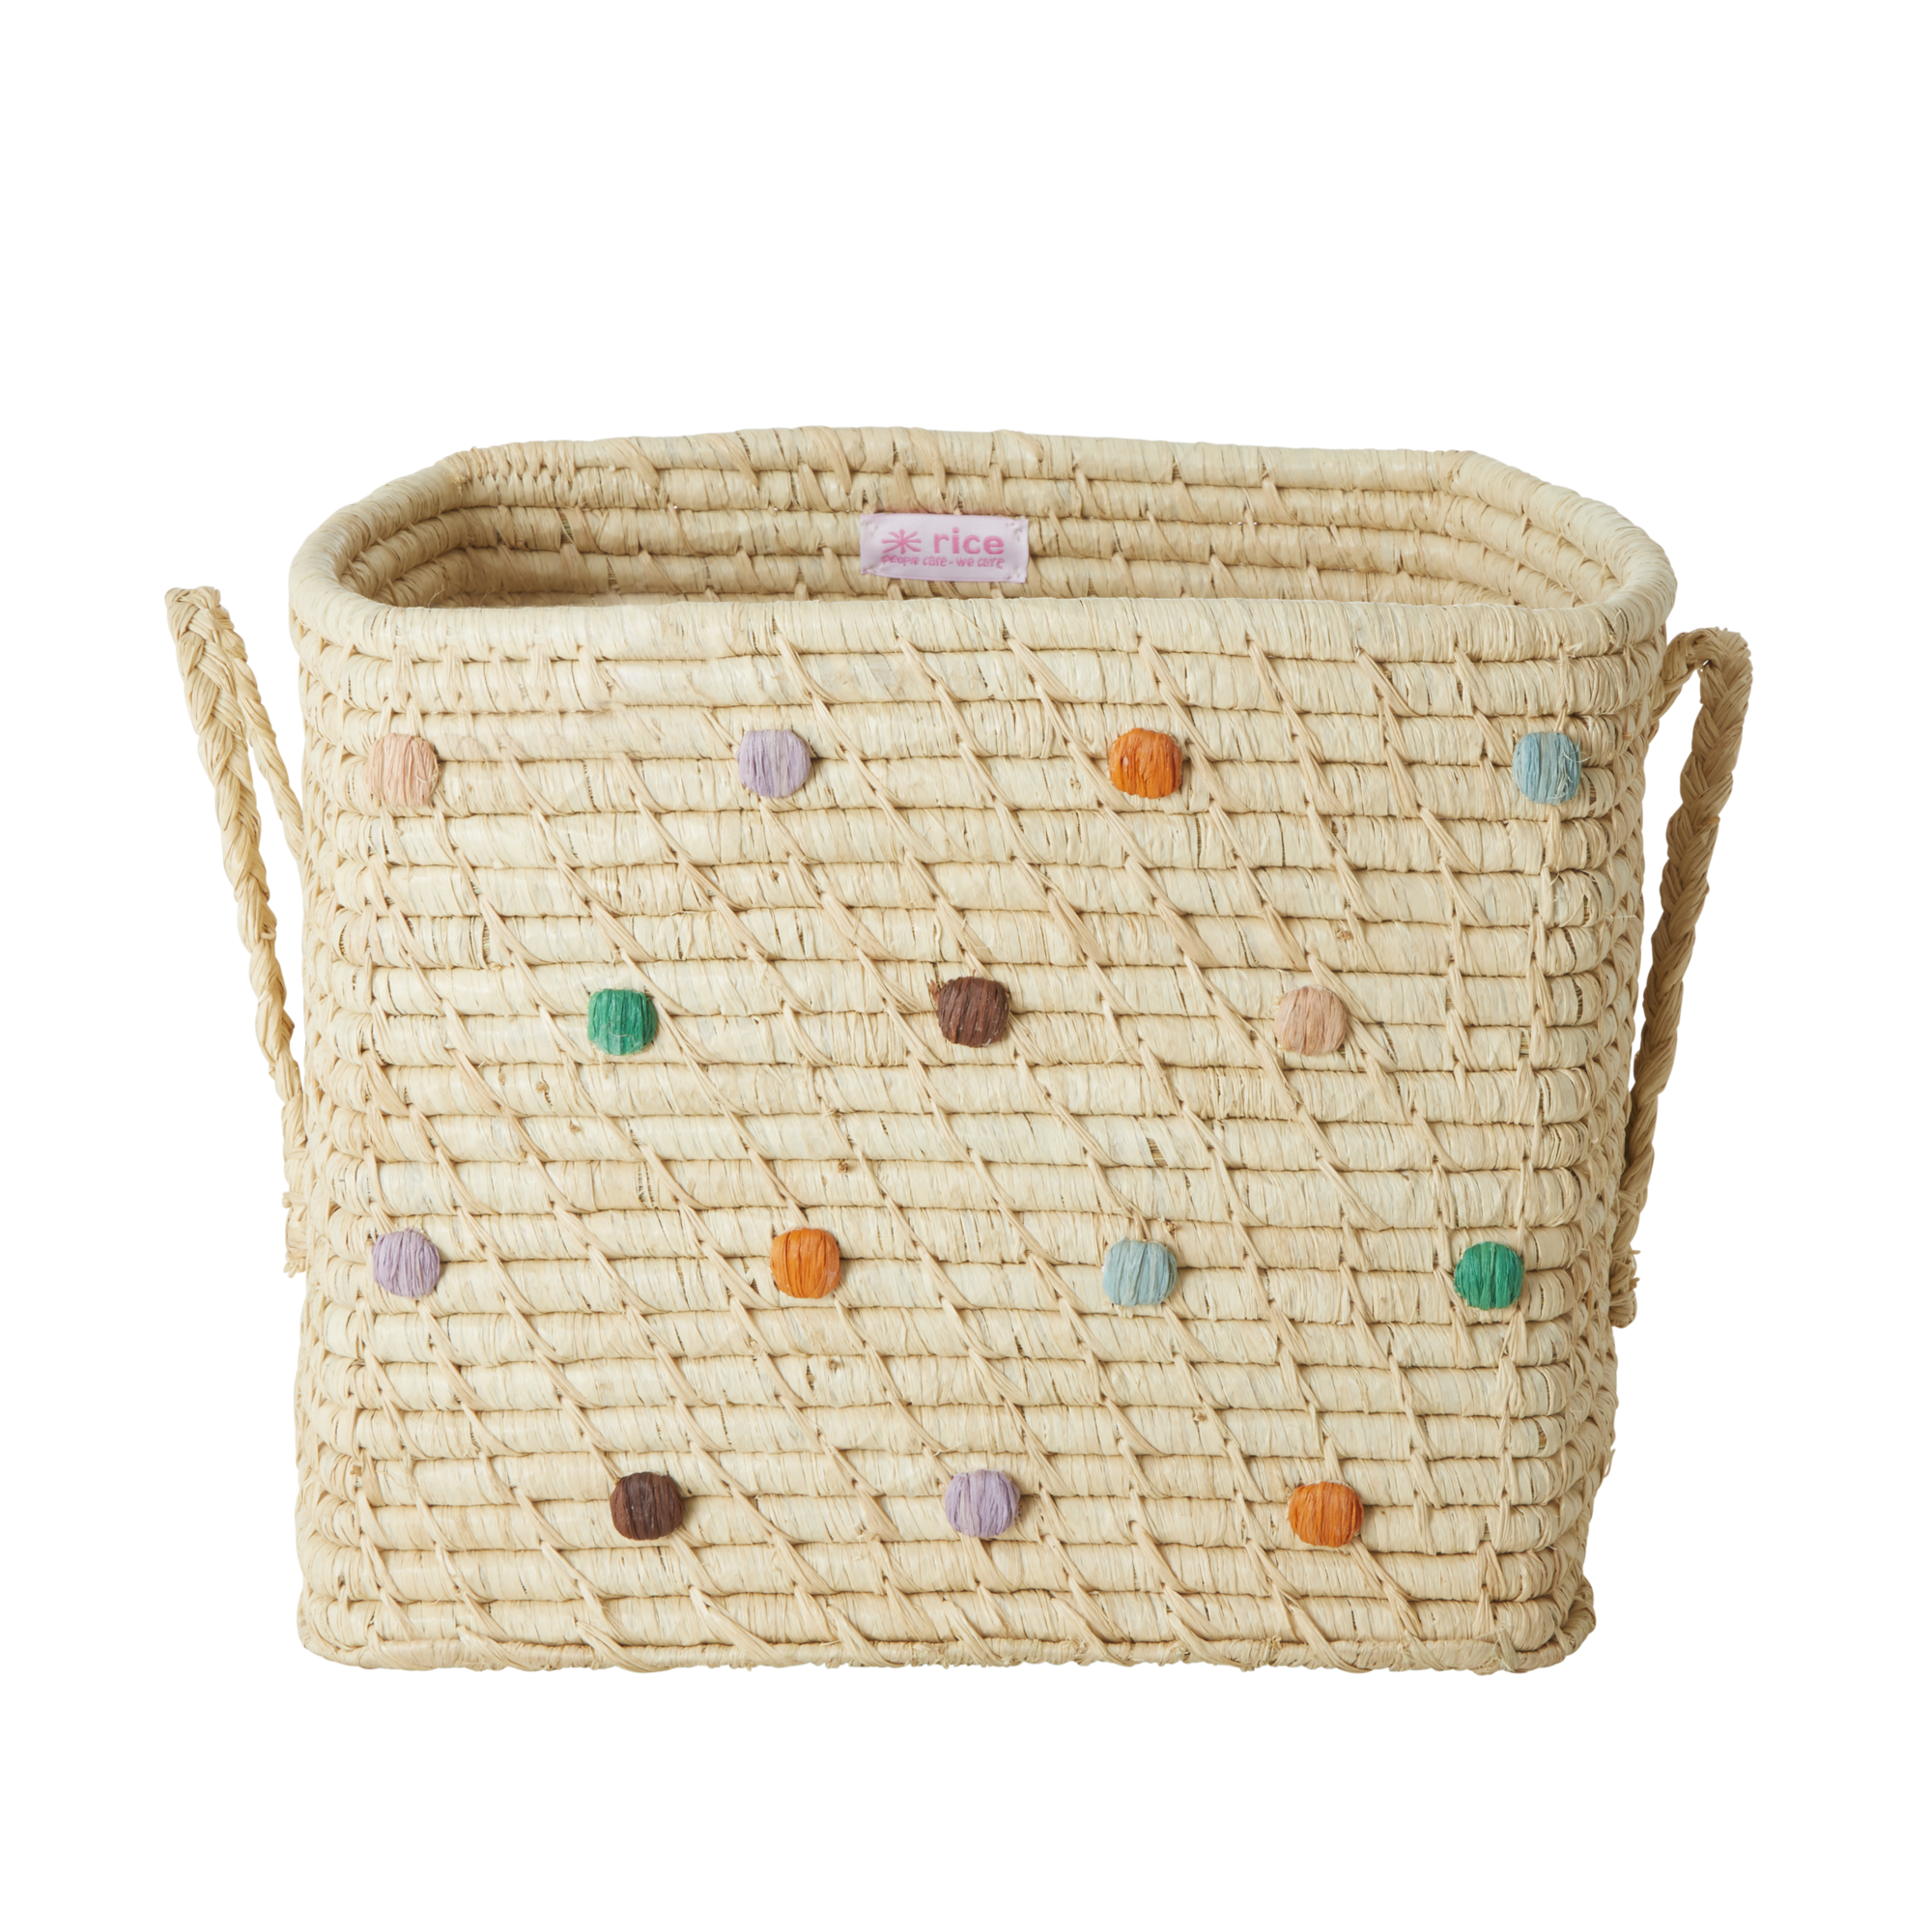 Rice - Small Square Raffia Basket with Leather Handles - Dots The Call of The Disco Ball